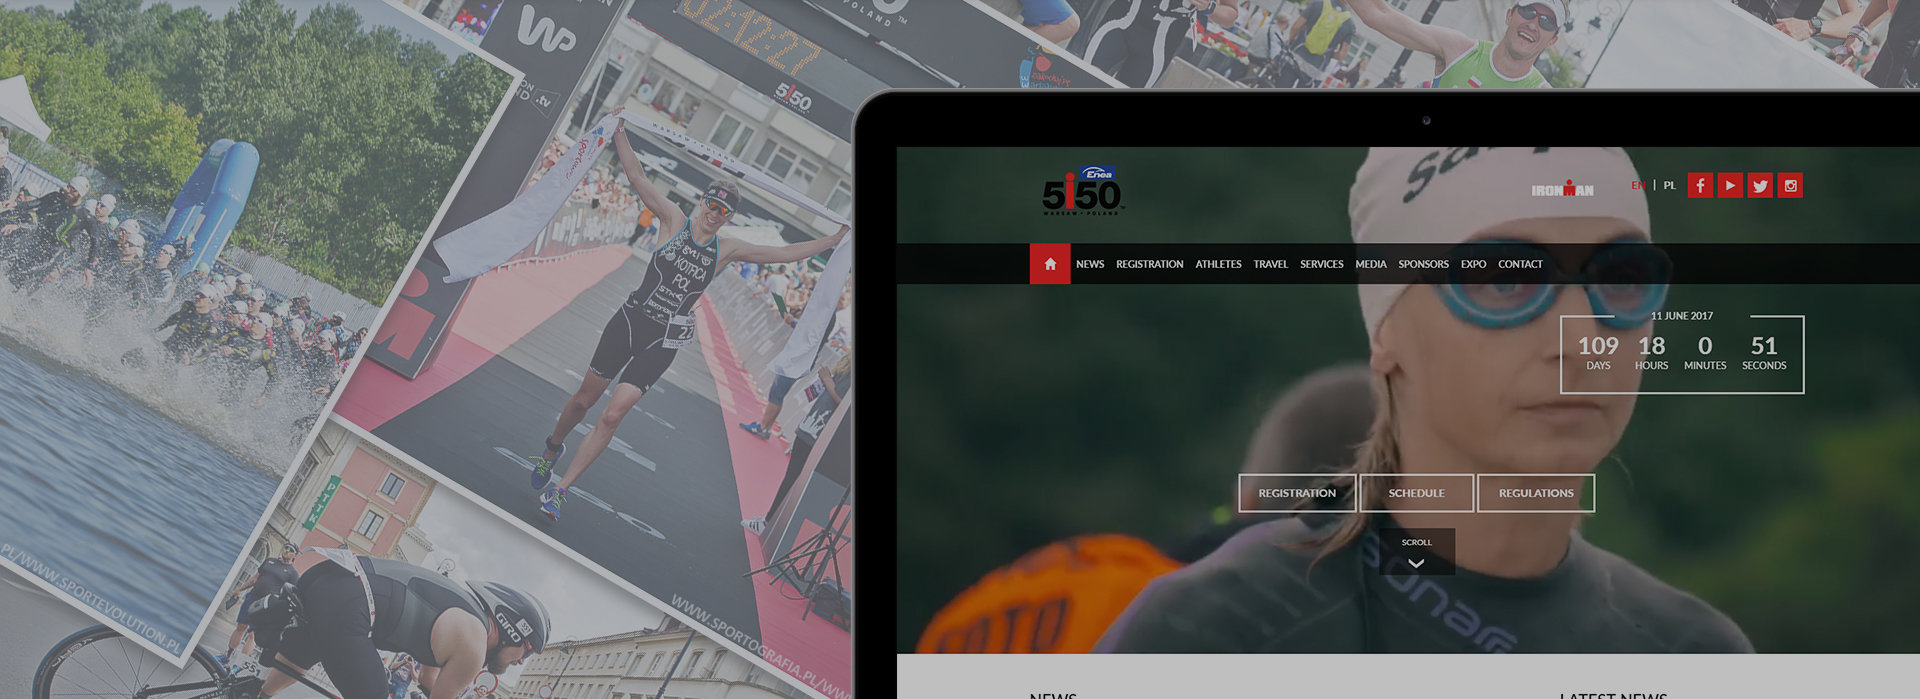 5150 Warsaw Triathlon website has been launched